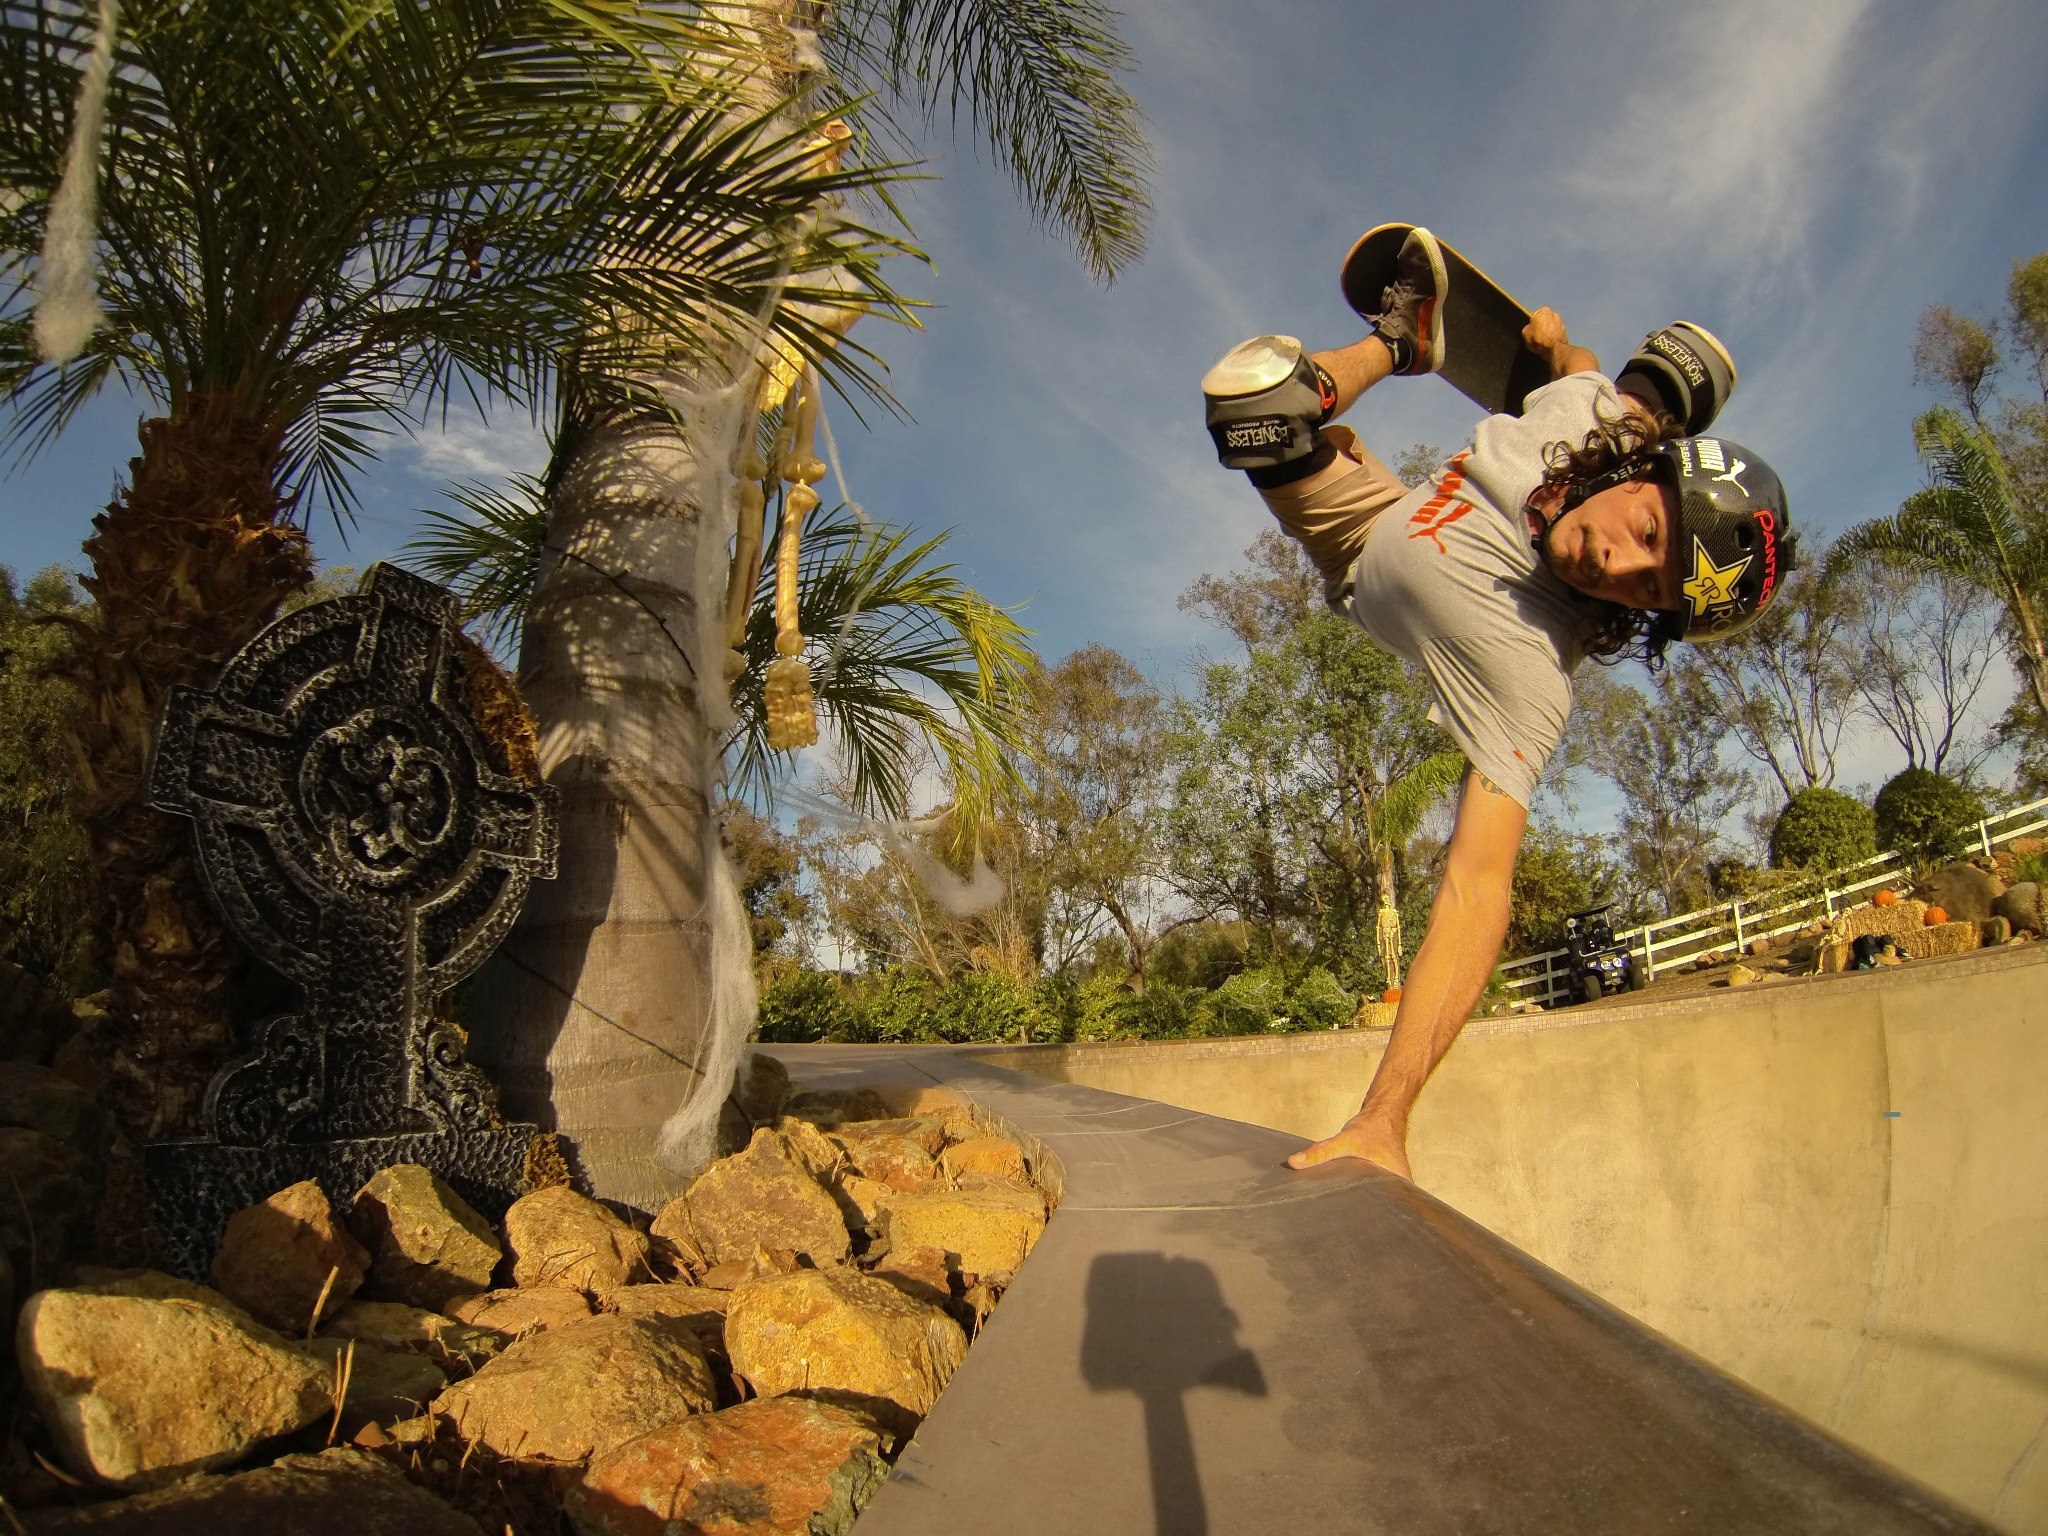 Skateboard  Bucky Lasek rips it up in his backyard bowl with his new HERO3